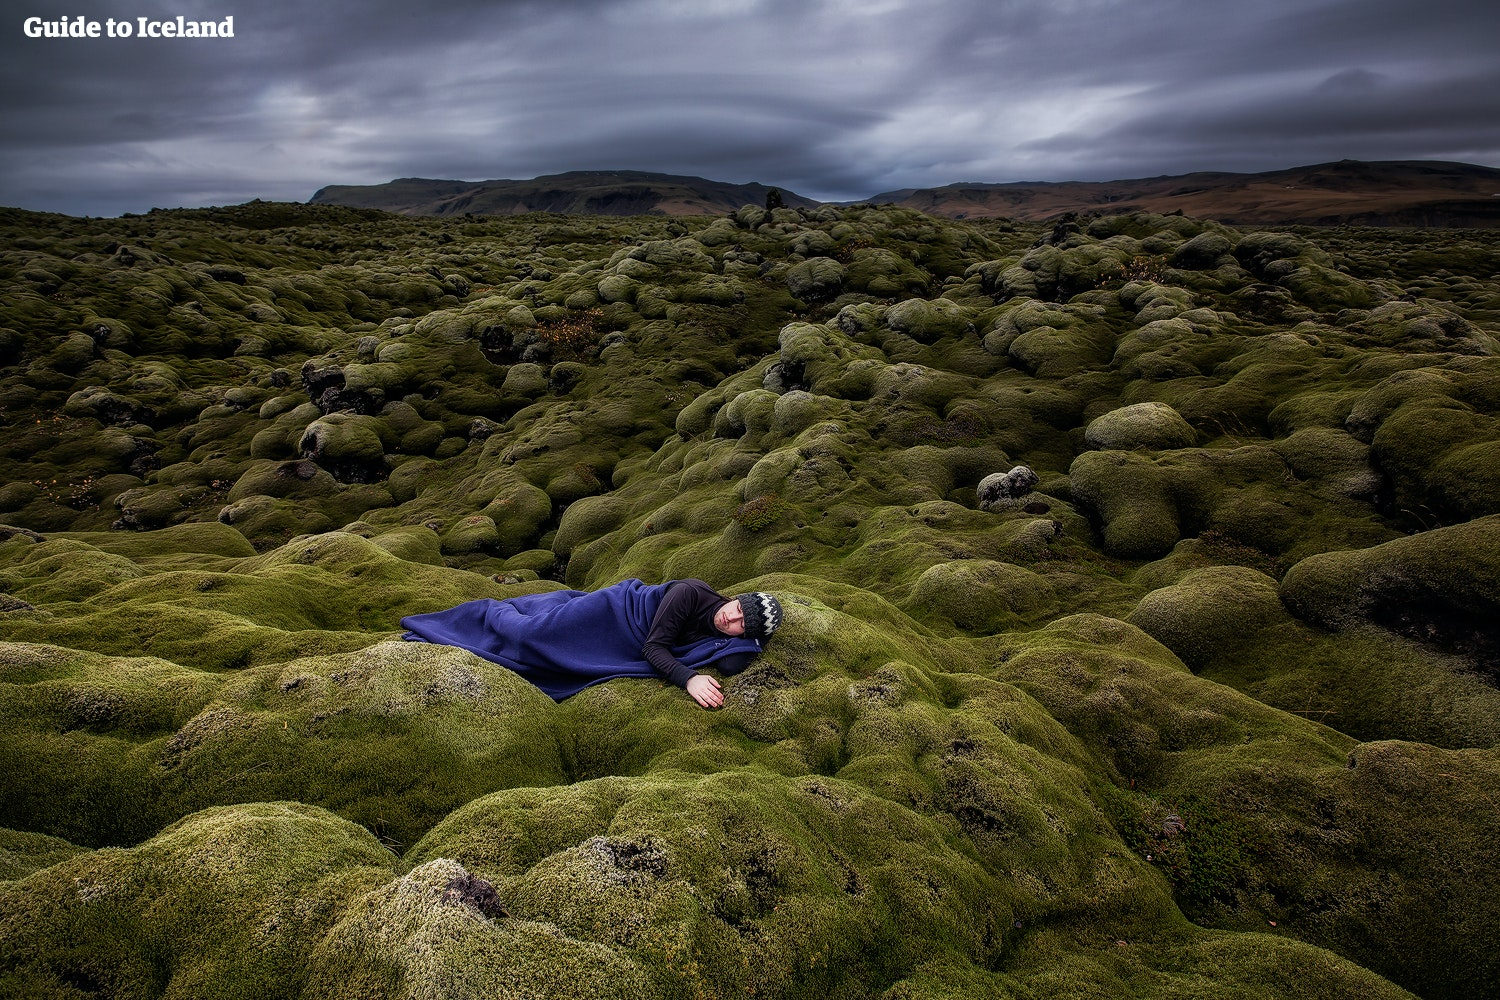 Take care of the Icelandic moss